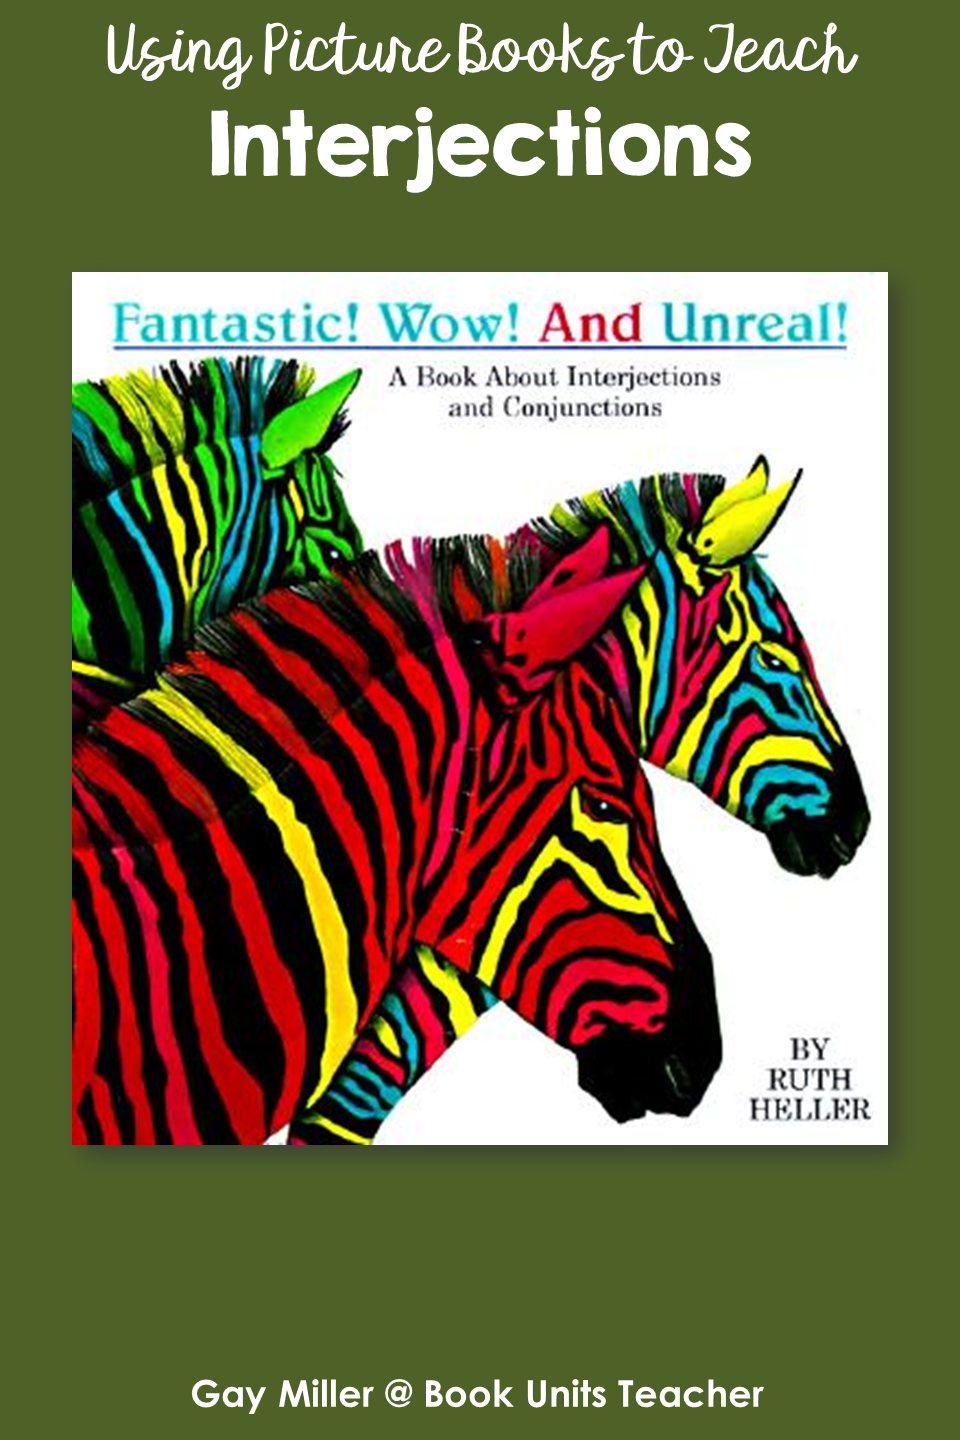 Interjections - Picture Books that Help Teach Parts of Speech